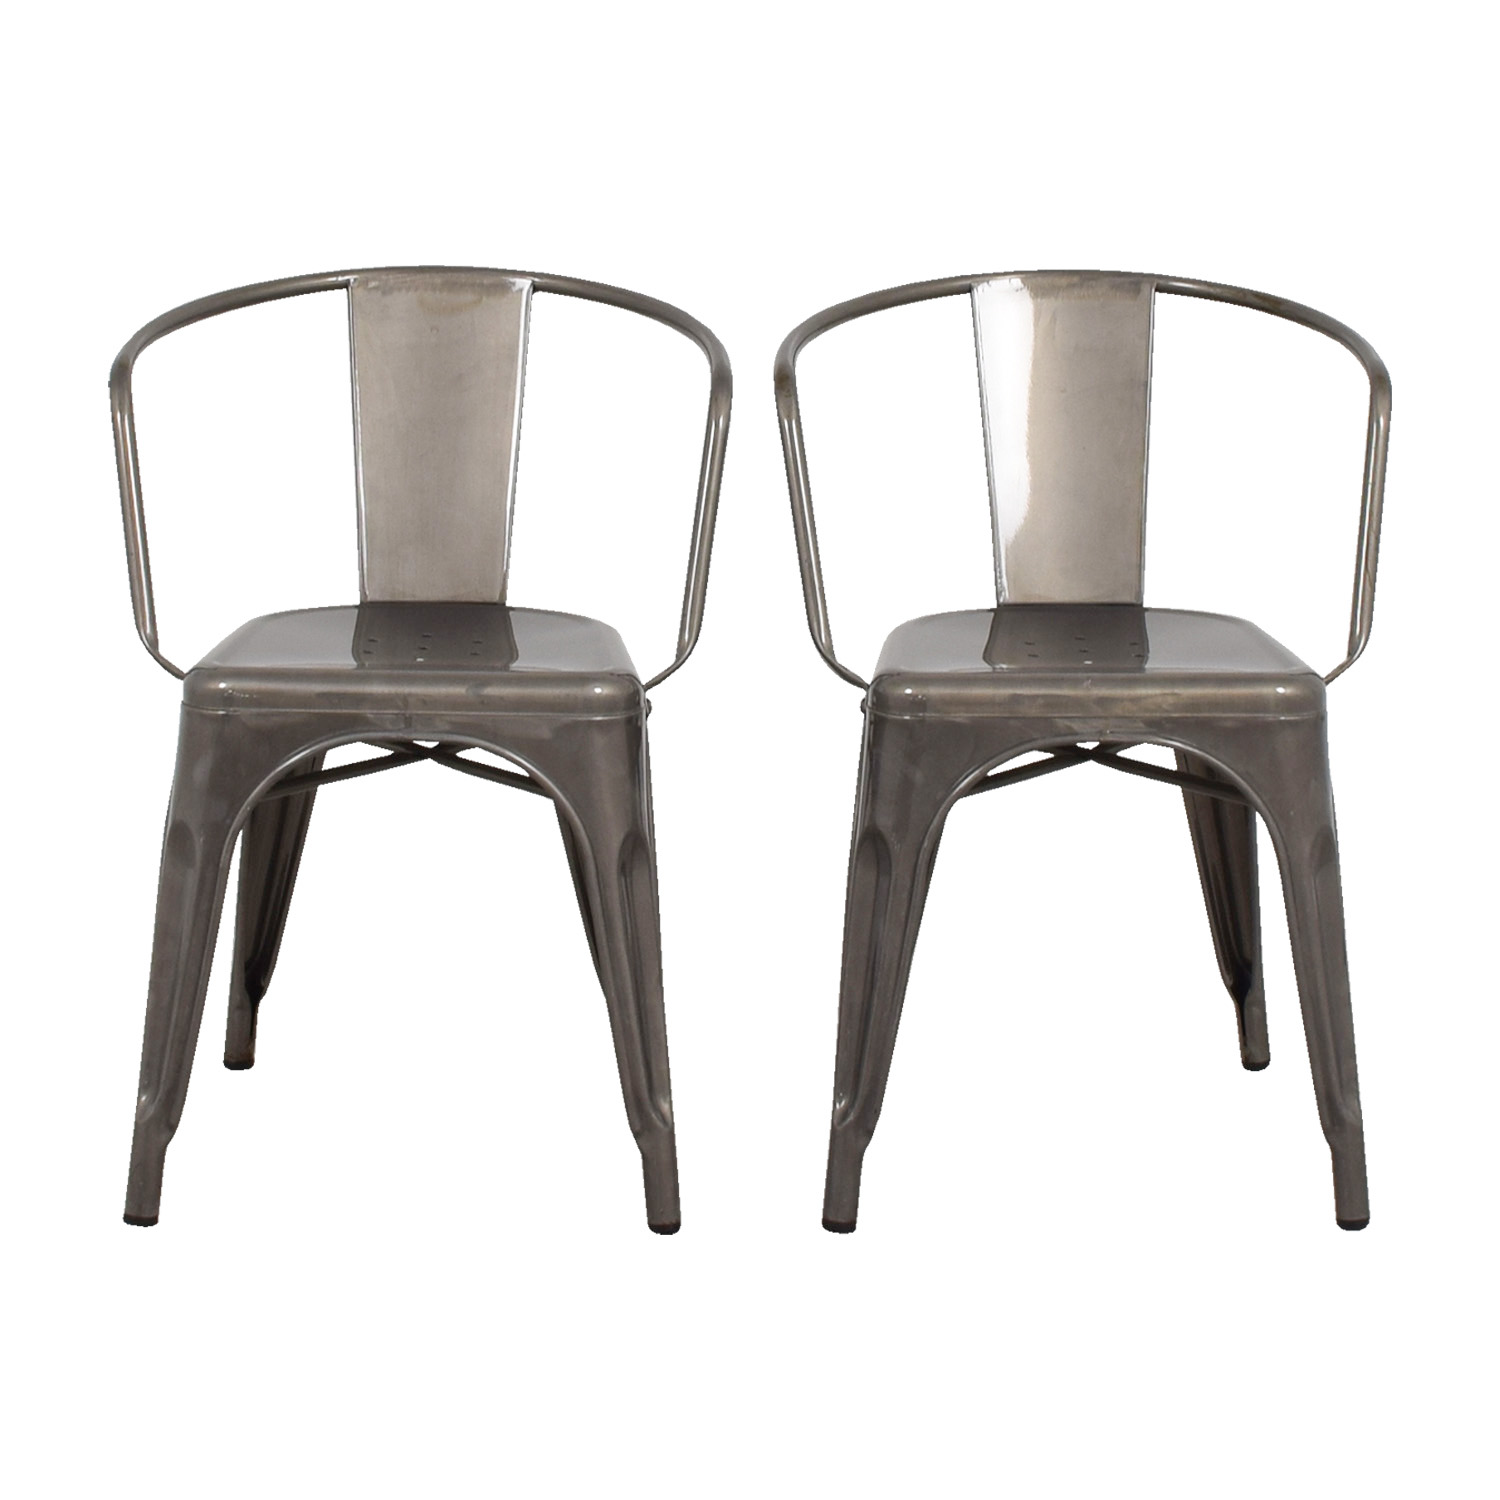 shop Target Carlisle Metal Dining Chair Target Chairs ...  sc 1 st  Furnishare & 70% OFF - Target Target Carlisle Metal Dining Chair / Chairs